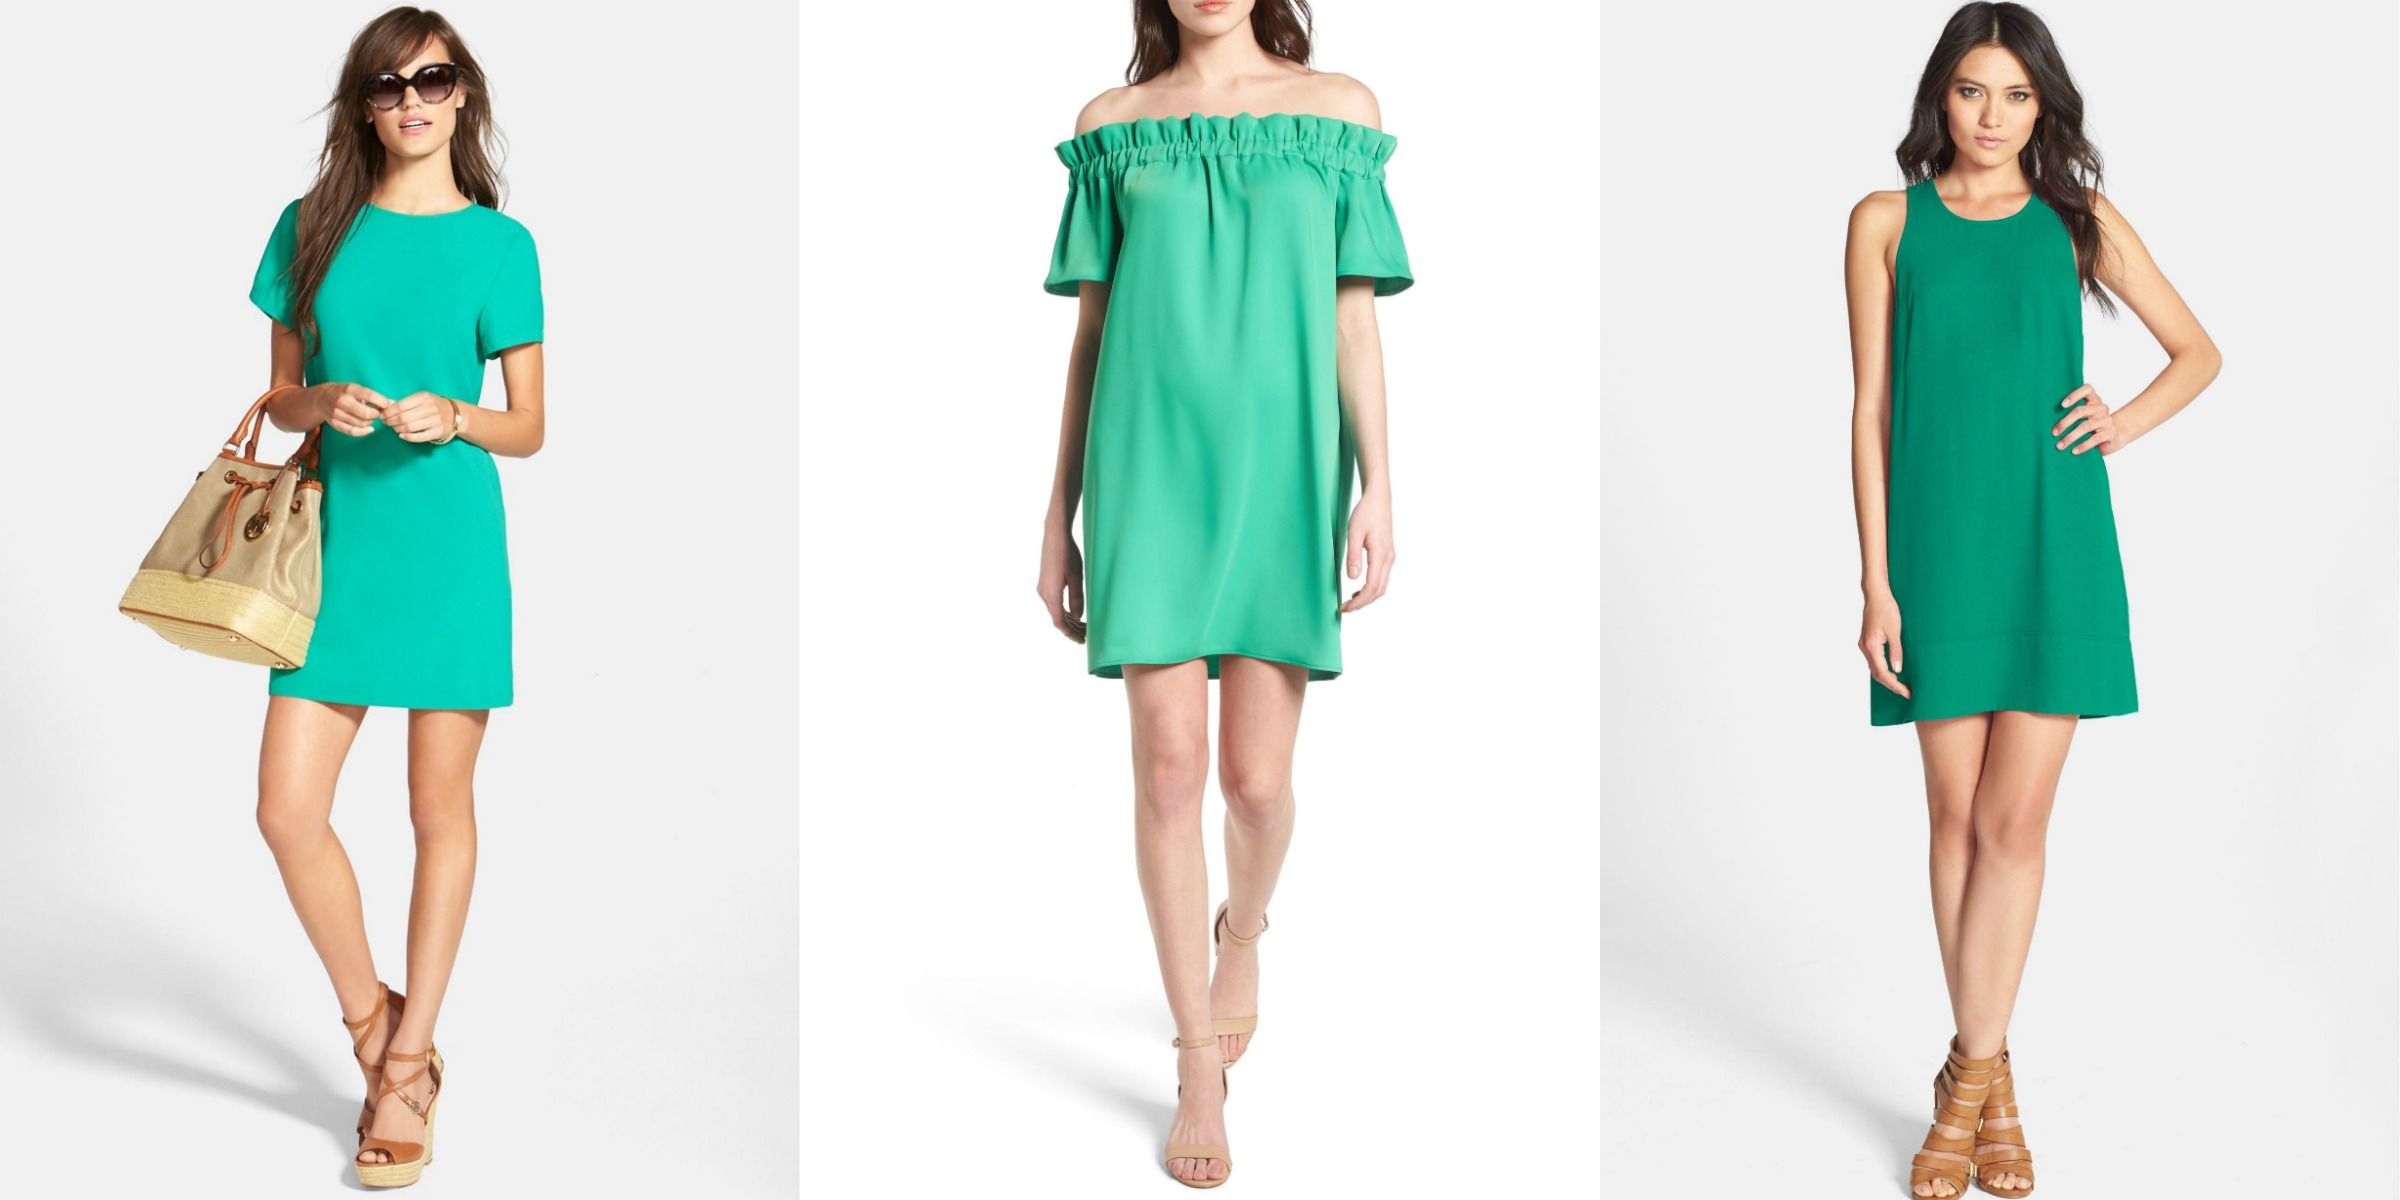 summer vacation dresses emerald green color outfits